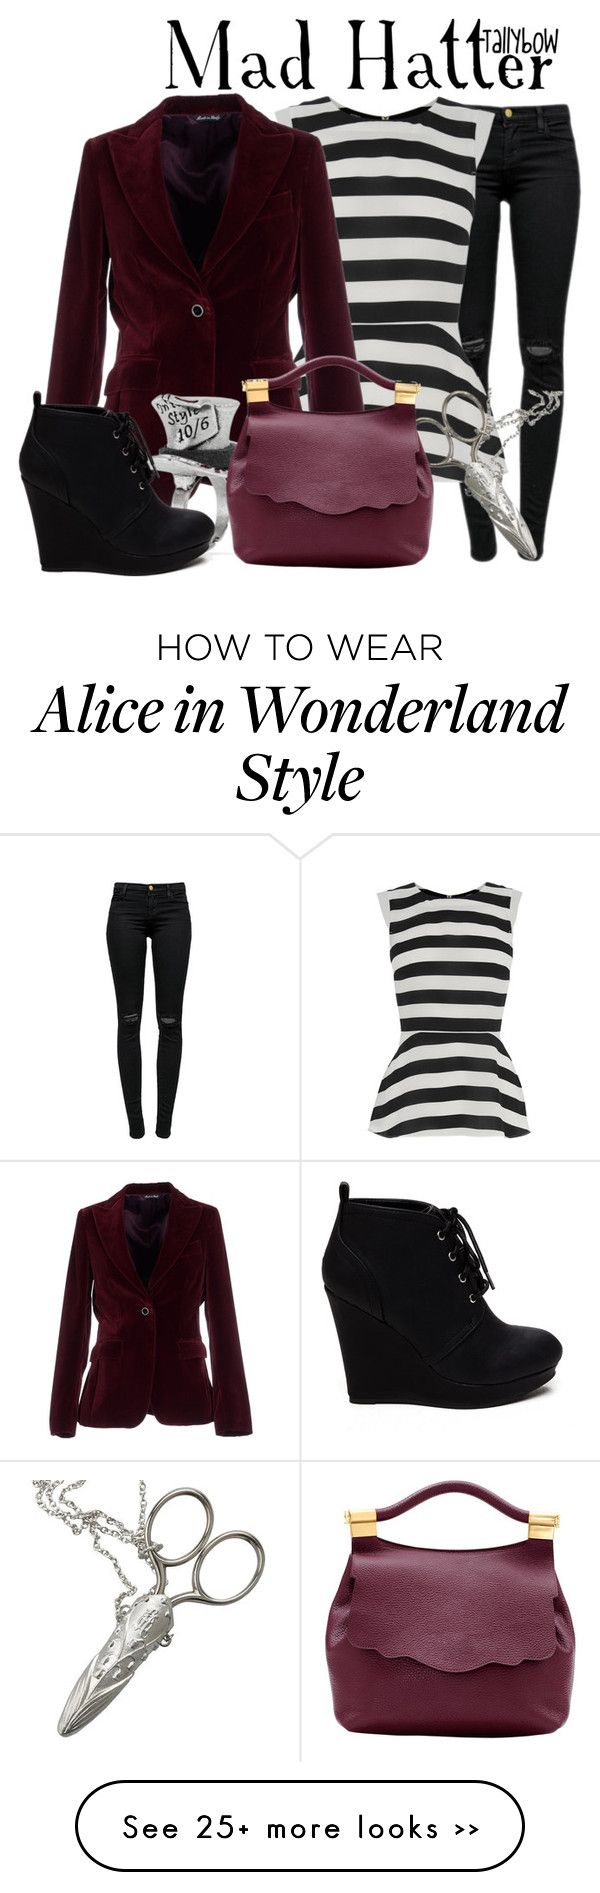 """Mad Hatter (Tim Burton's Alice in Wonderland)"" by tallybow on Polyvore"